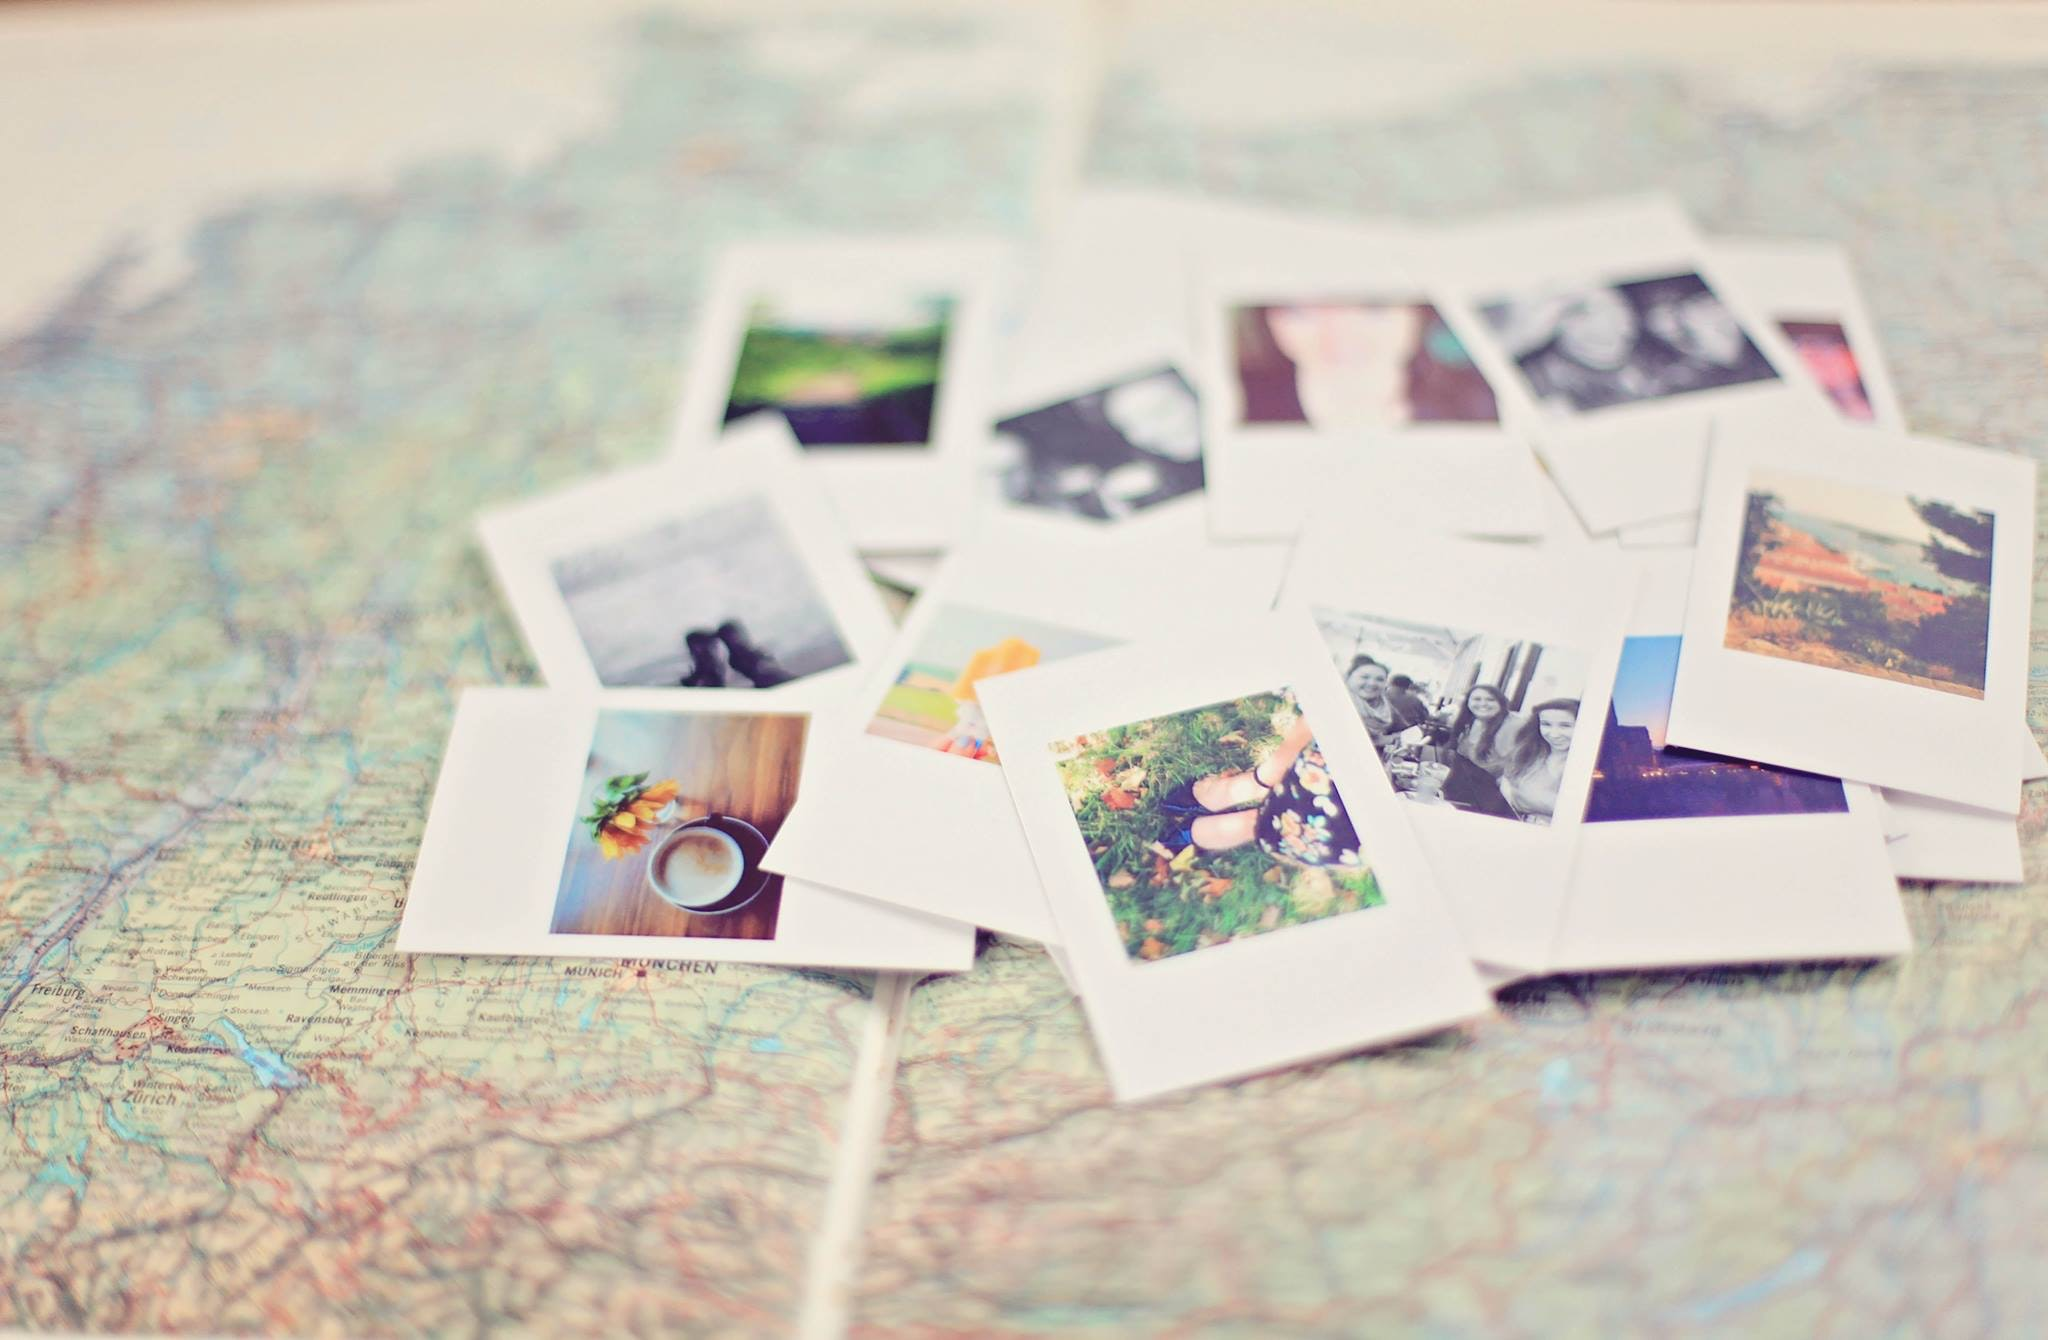 Images of travels on a map of study abroad adventures